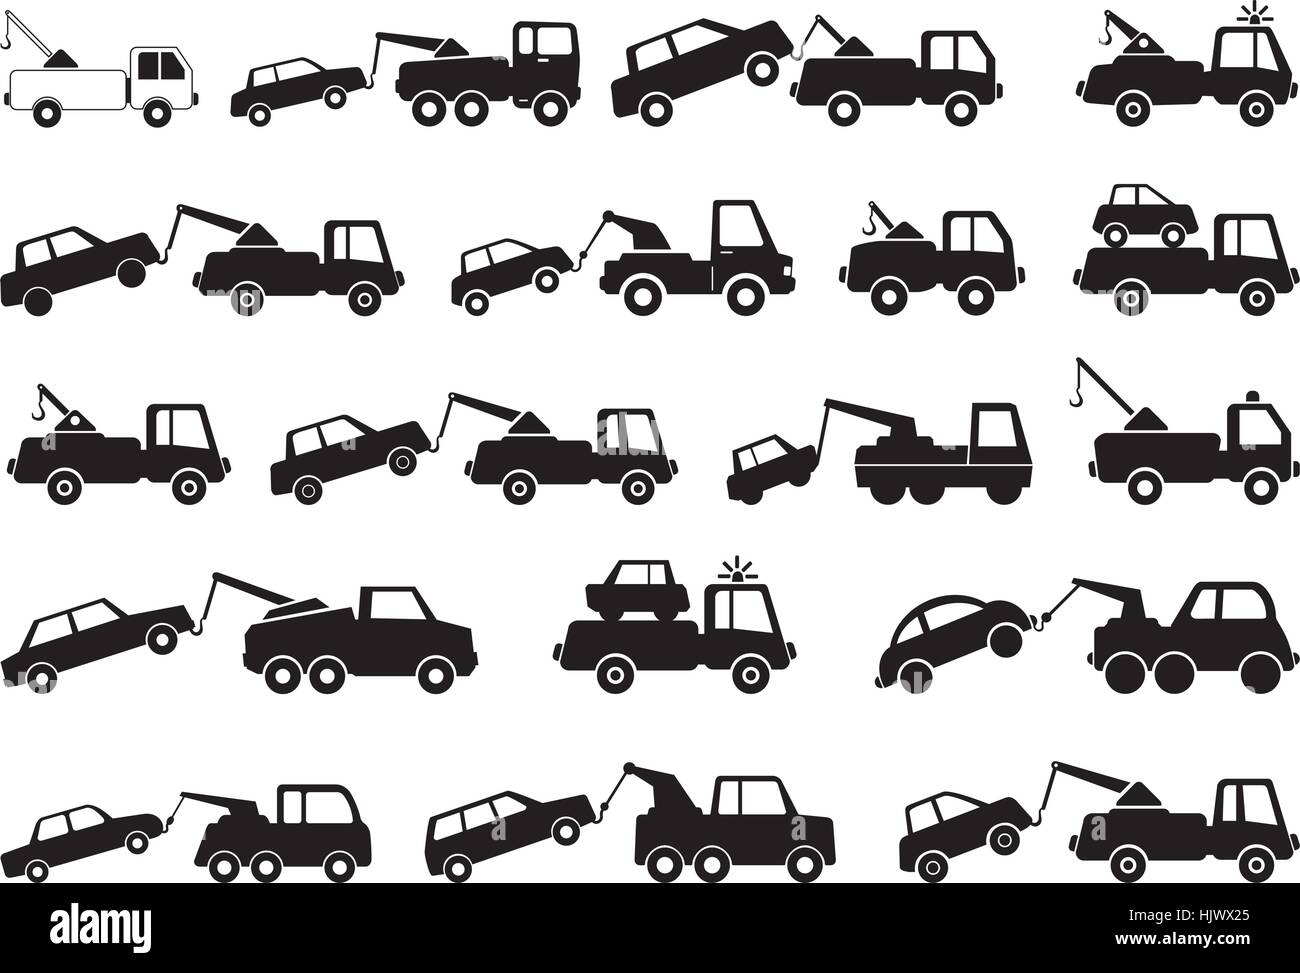 Truck used to tow or pick up damaged or disabled vehicles. Tow truck and towing service as vector graphic. - Stock Vector